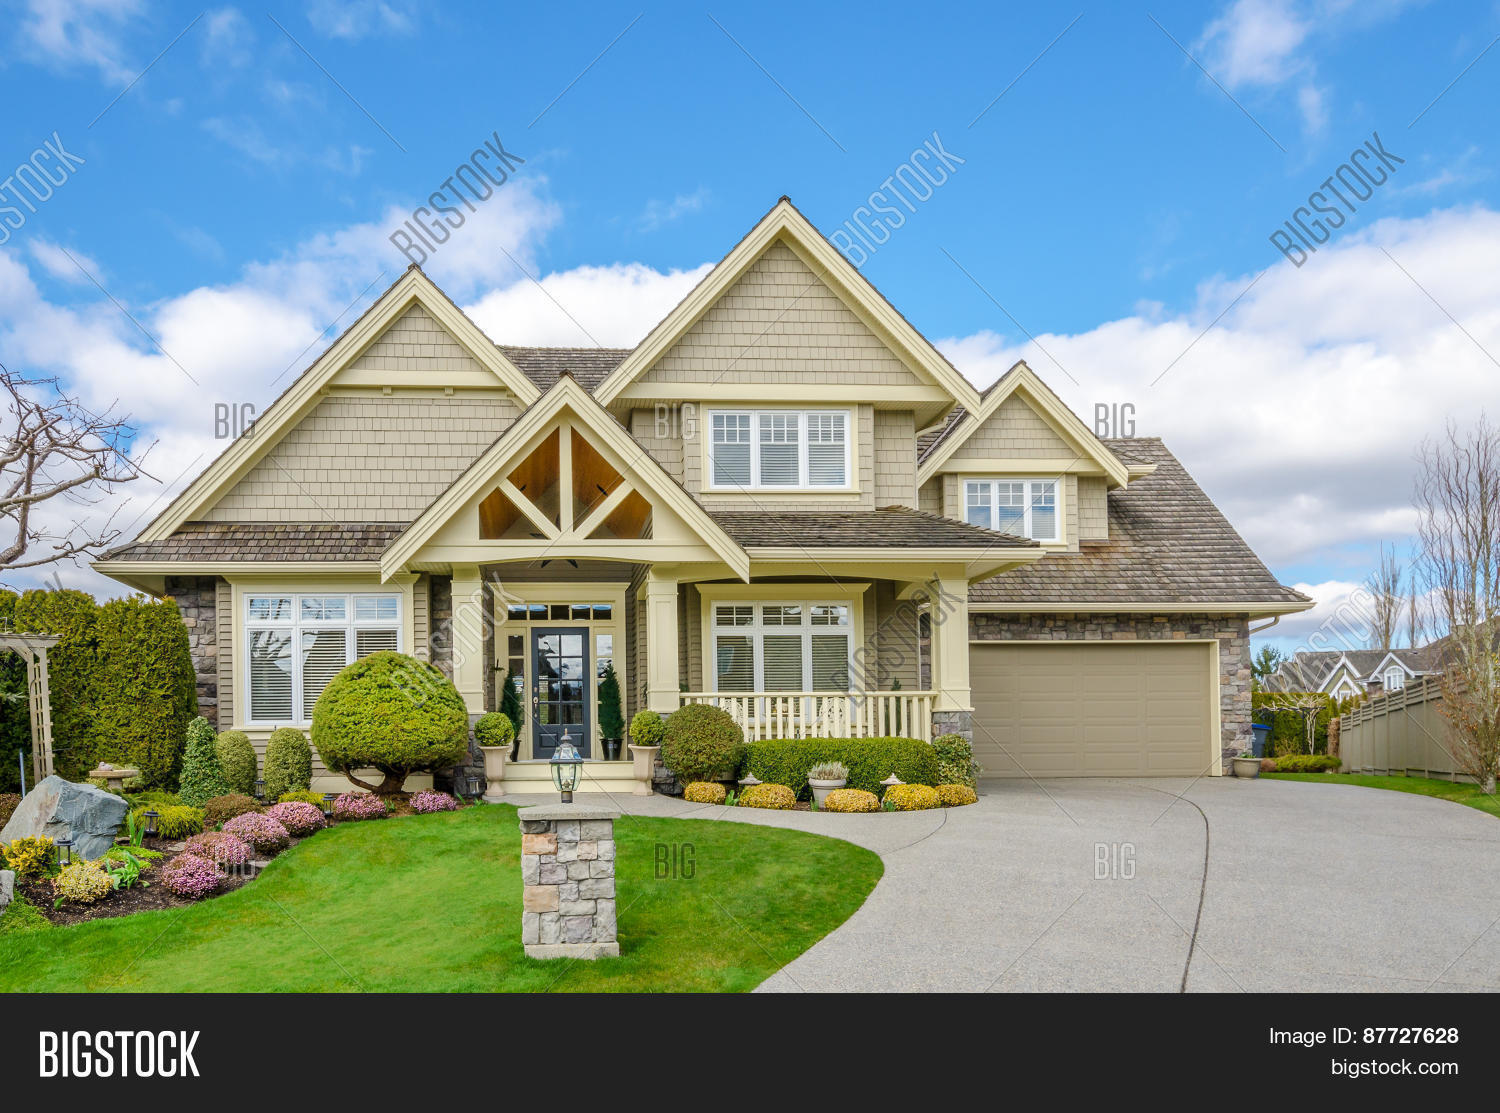 Luxury house two car image photo free trial bigstock - Beautiful home pictures exterior ...